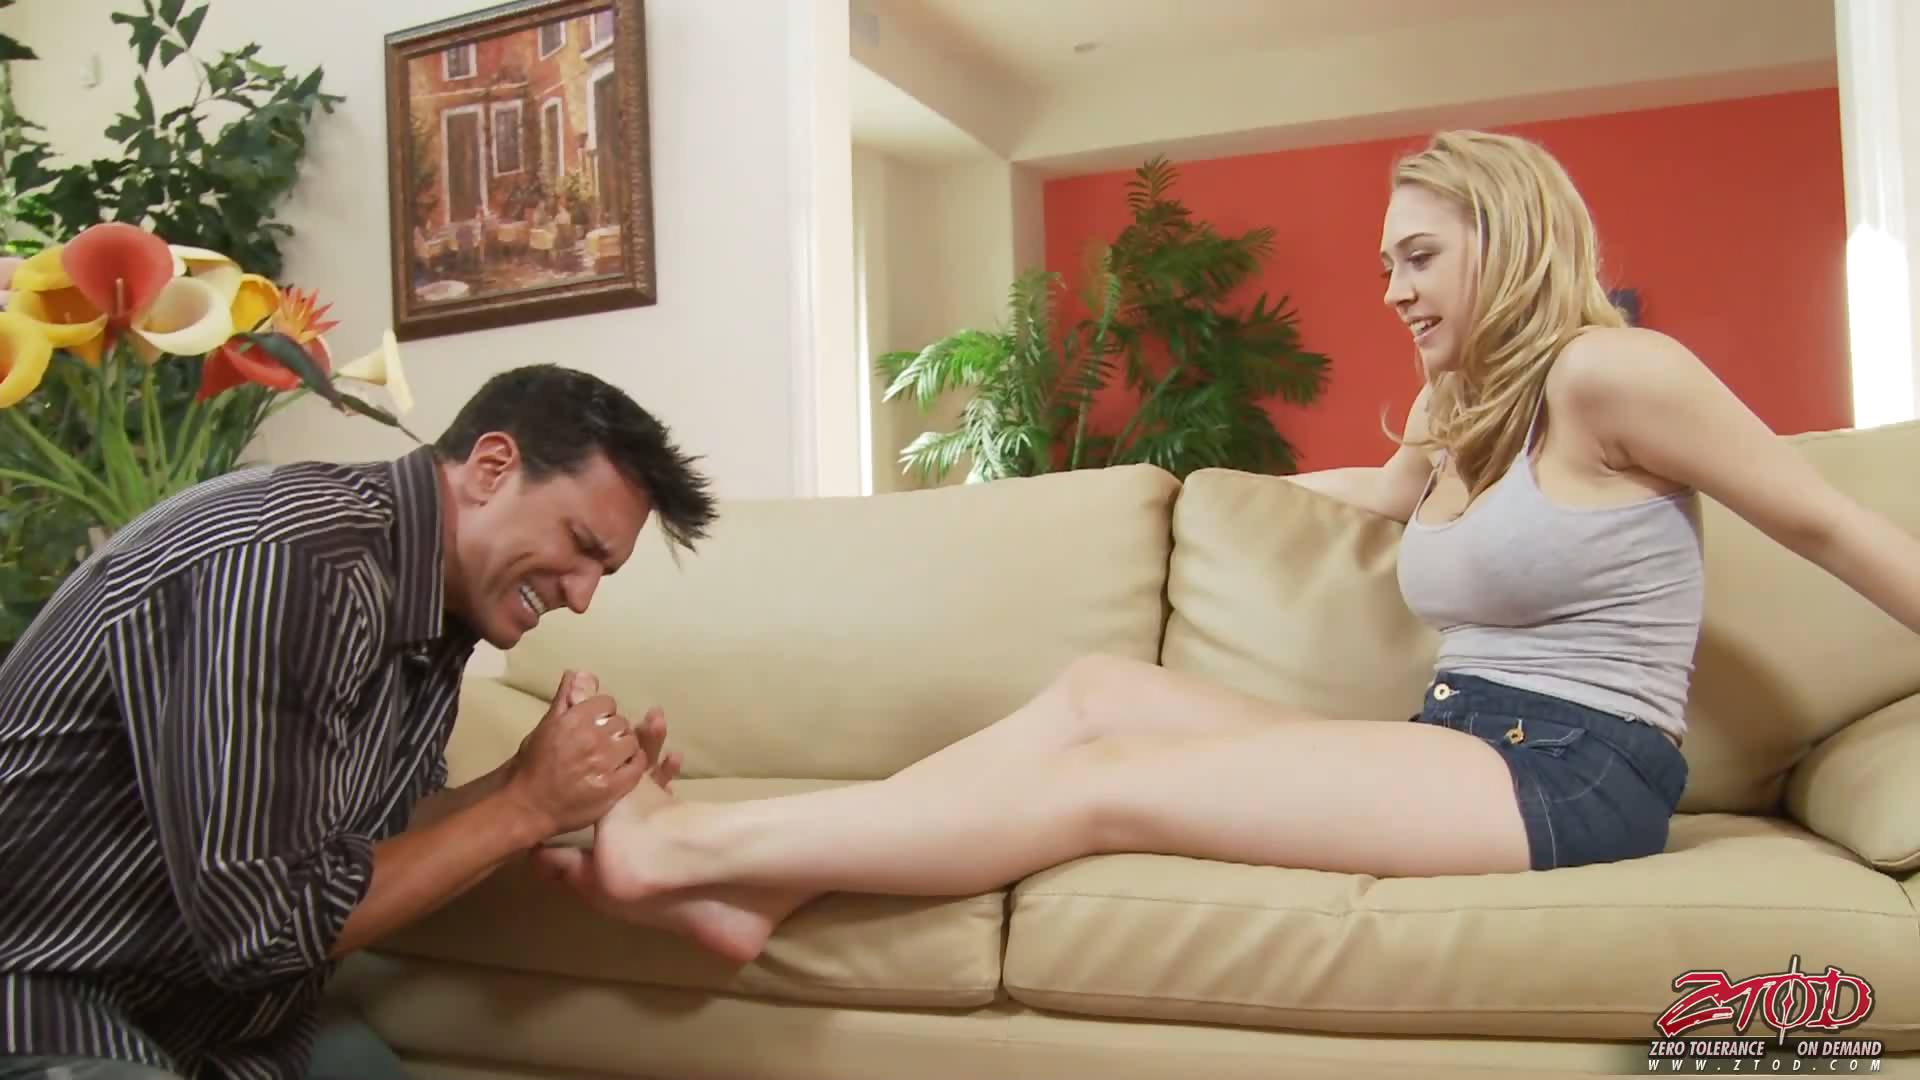 Porno Video of Official Wife Swap Parody